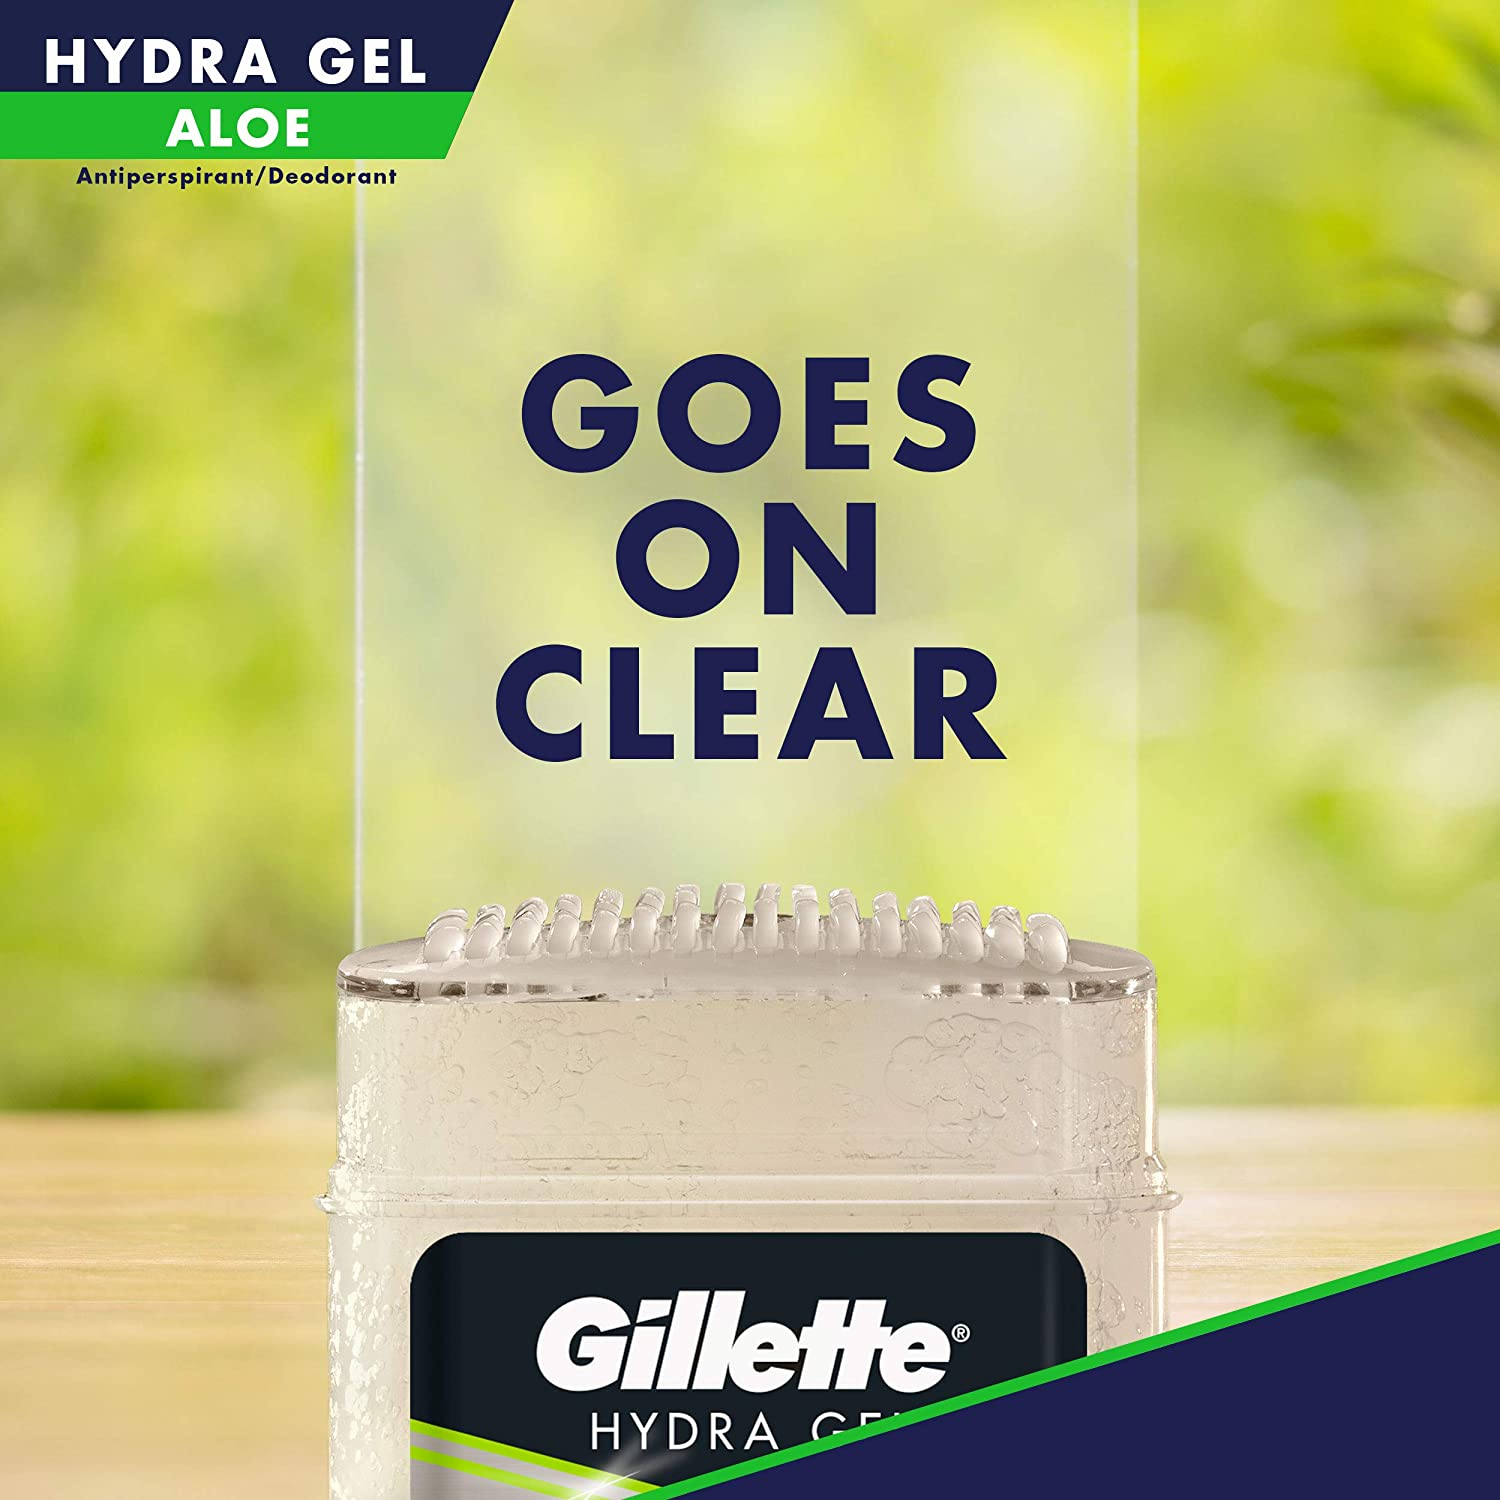 Gillette Antiperspirant Deodorant for Men, Hydra Clear Gel With Aloe, 3.8 Oz, Pack Of 3 : Beauty